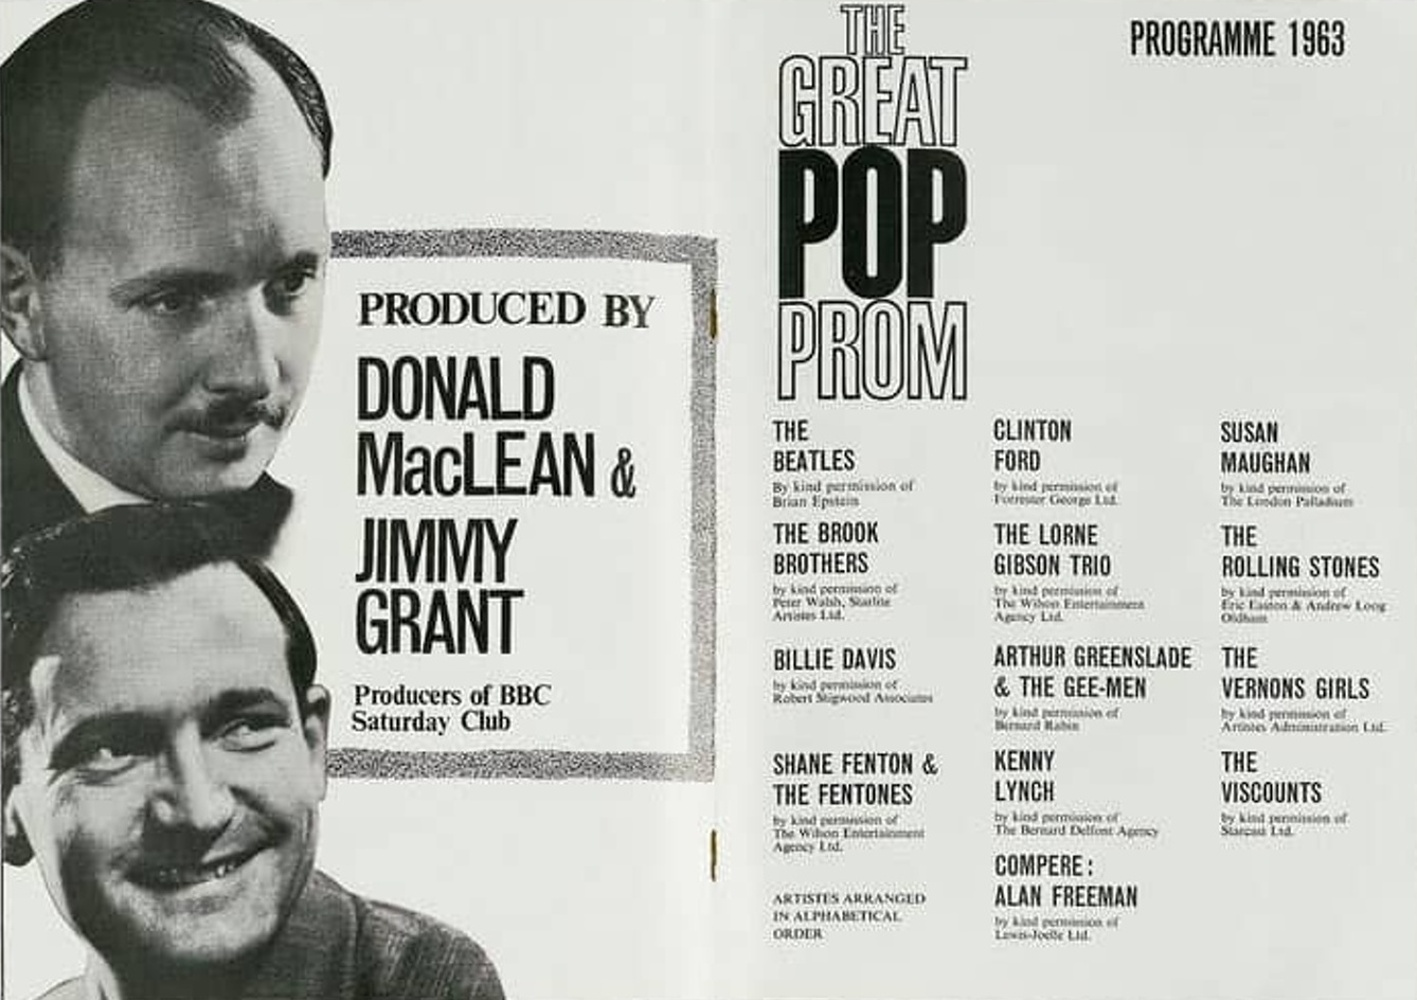 Poster of Great Pop Prom at London's Royal Albert Hall / 15.09.1963